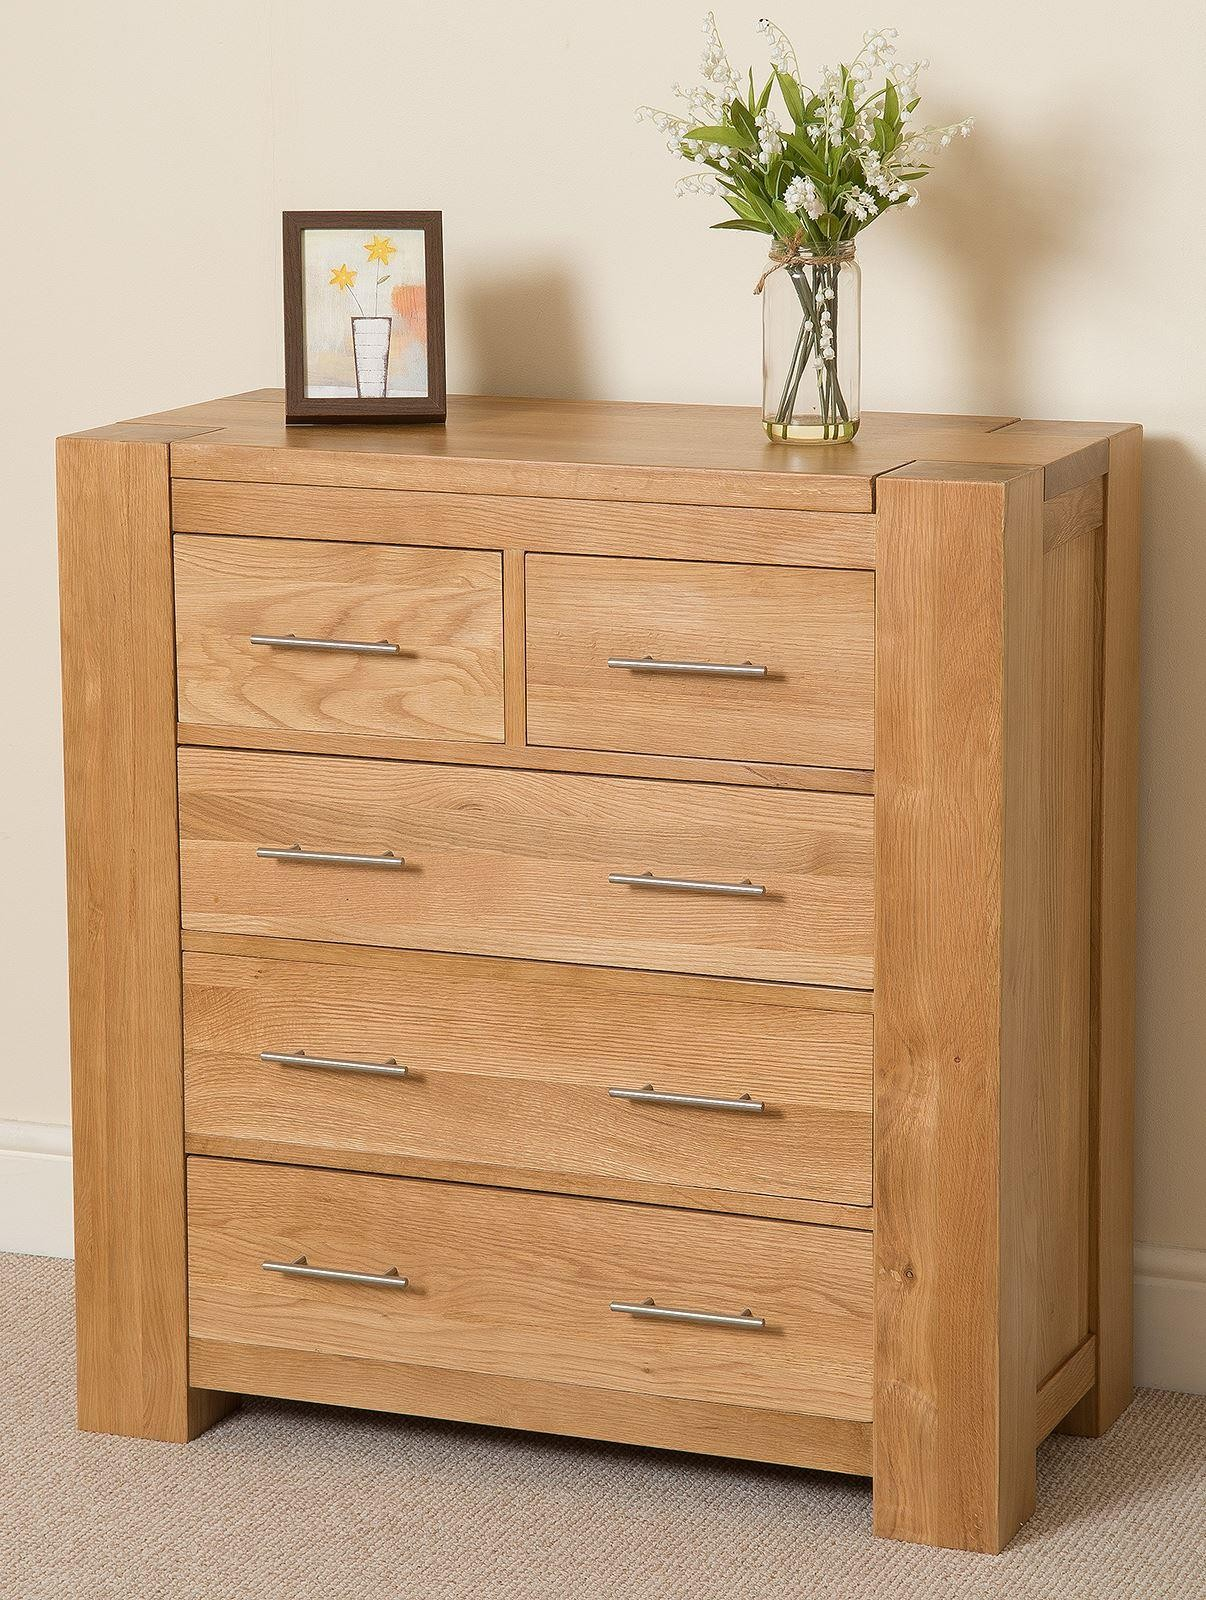 Kuba Solid Oak Chest of Drawers [2+3 drawer] - Right Side